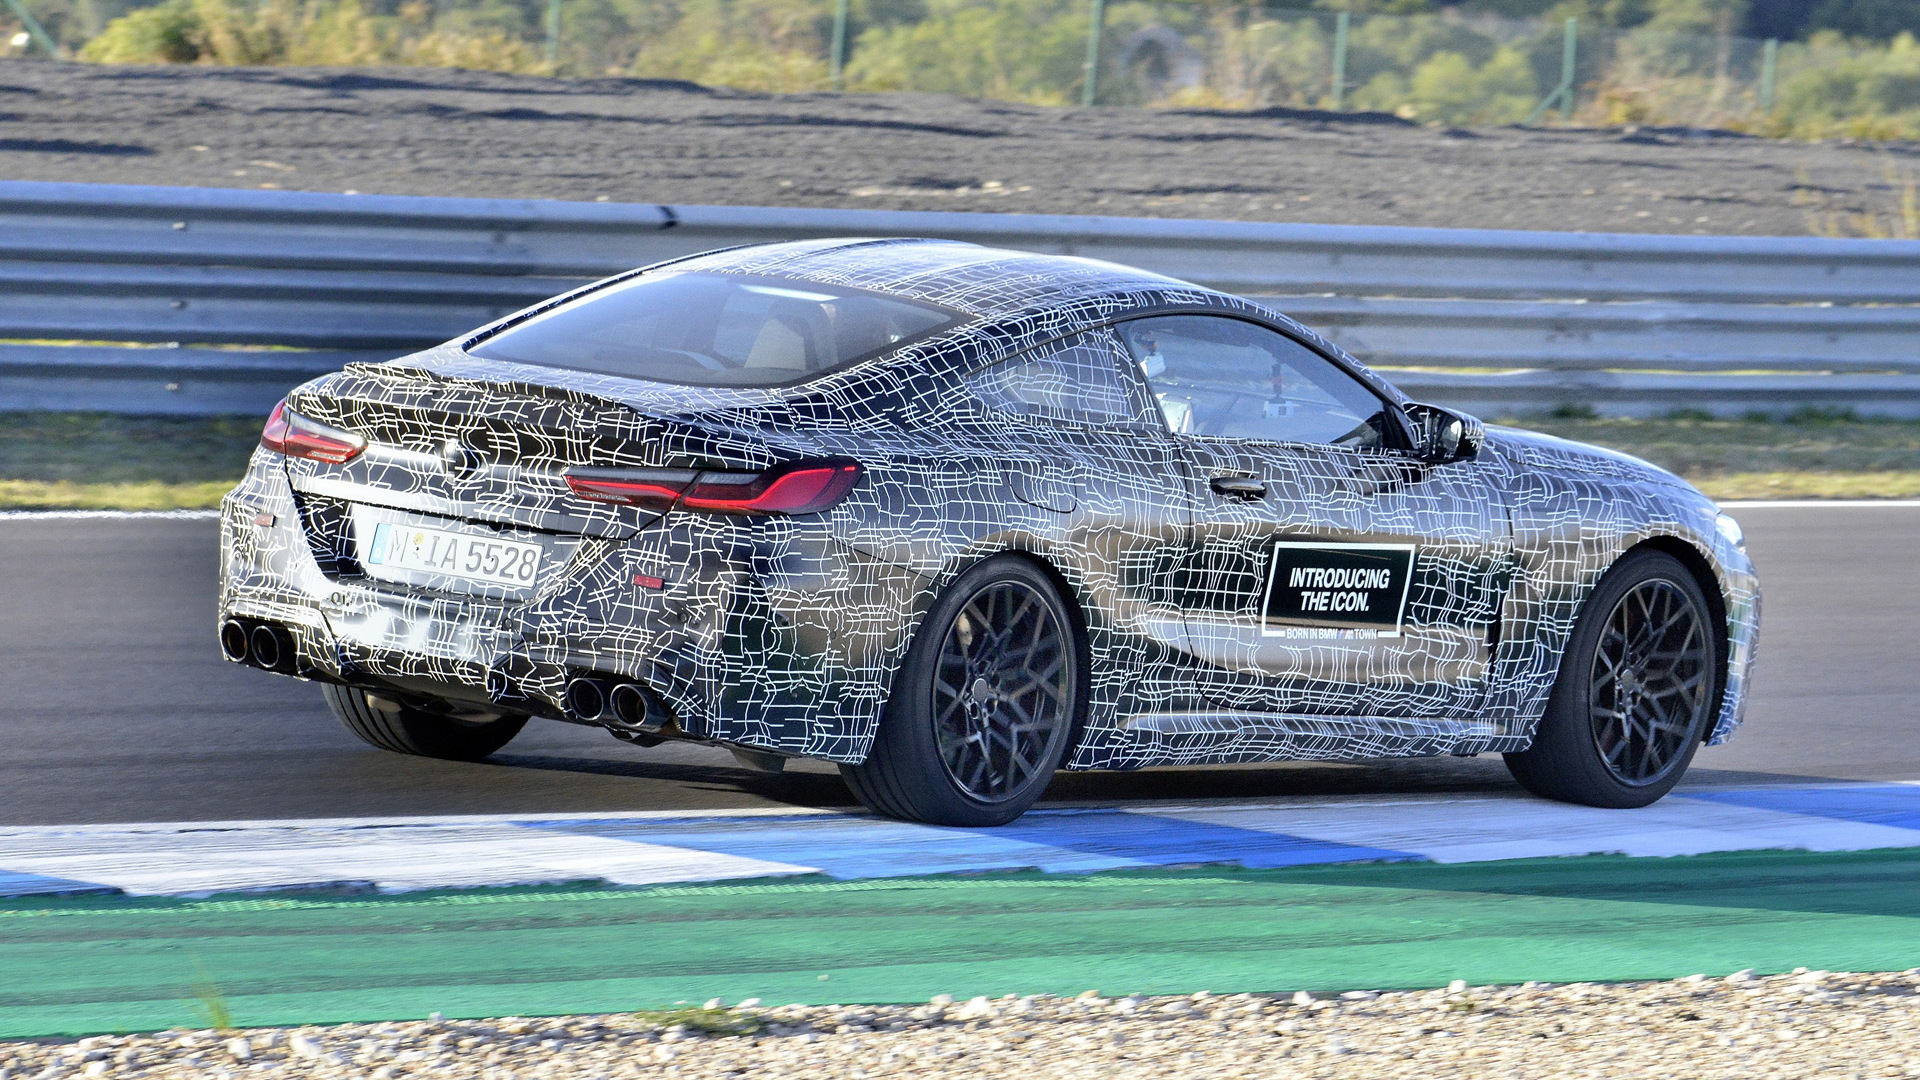 2020 BMW M8 prototype